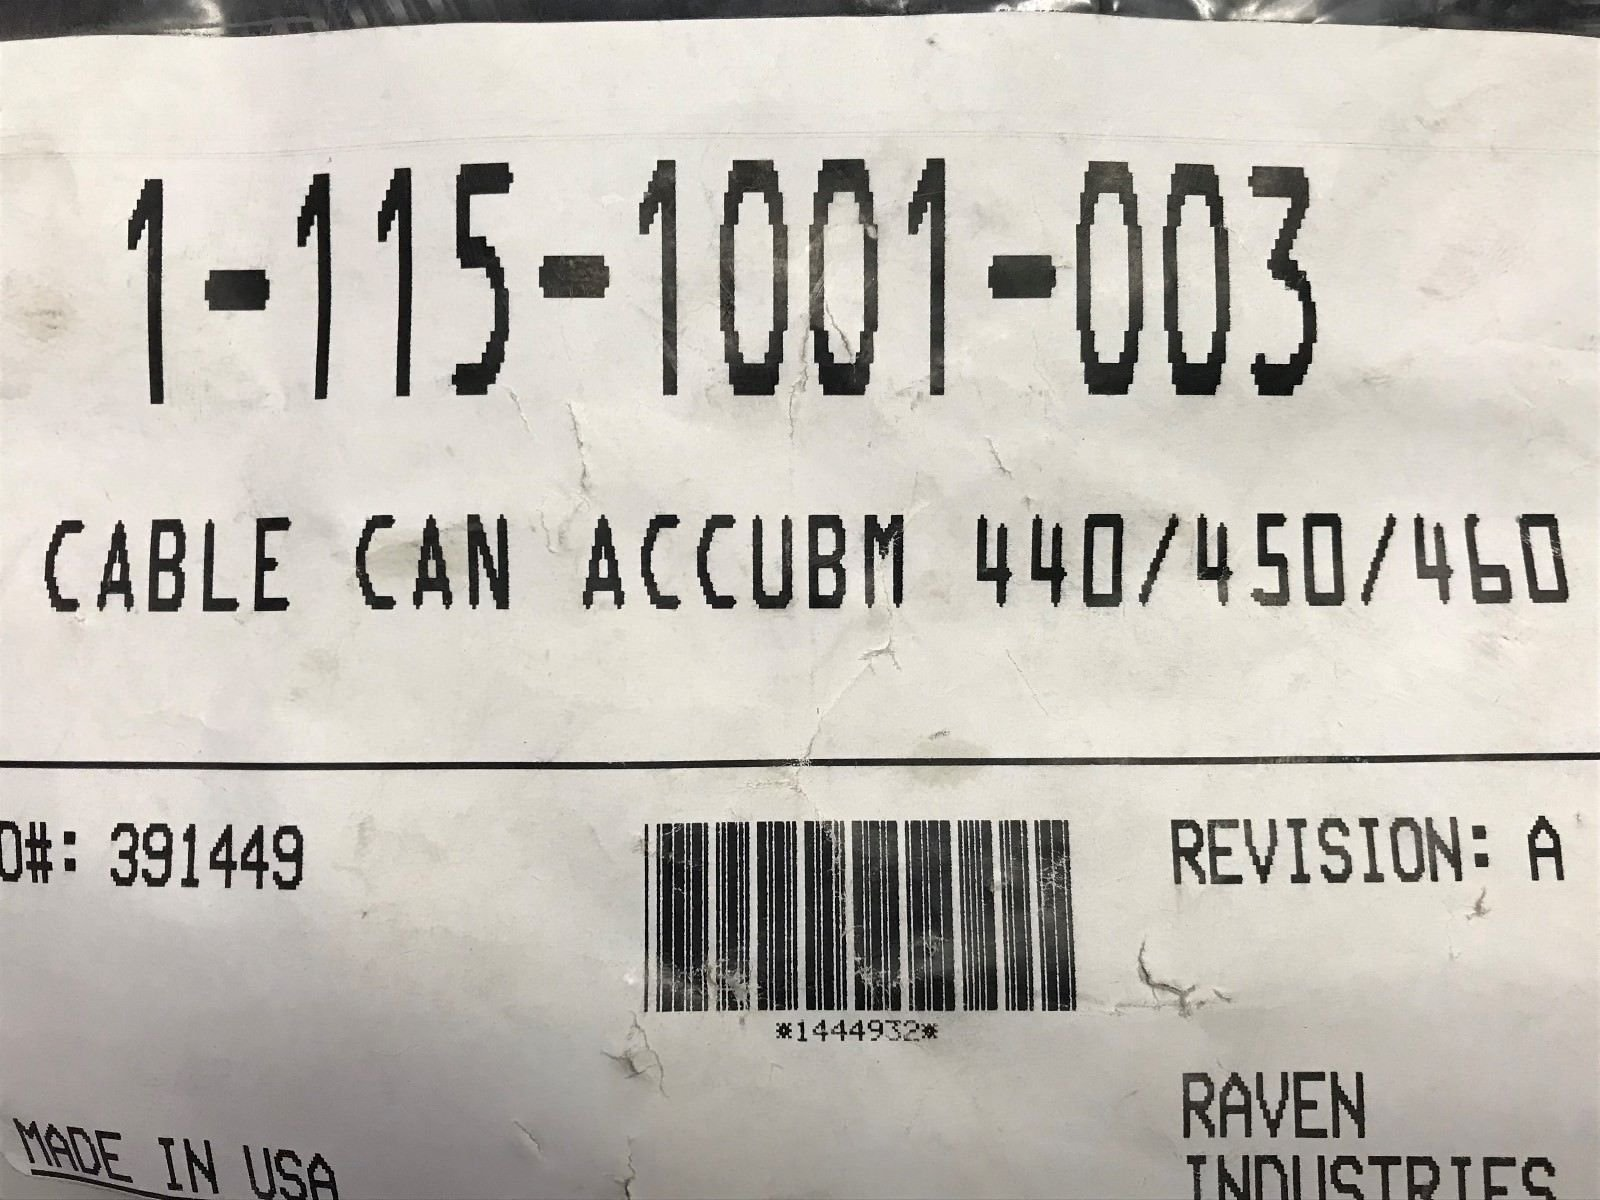 115-1001-003 RAVEN CABLE CAN ACCUBOOM 440/450/460